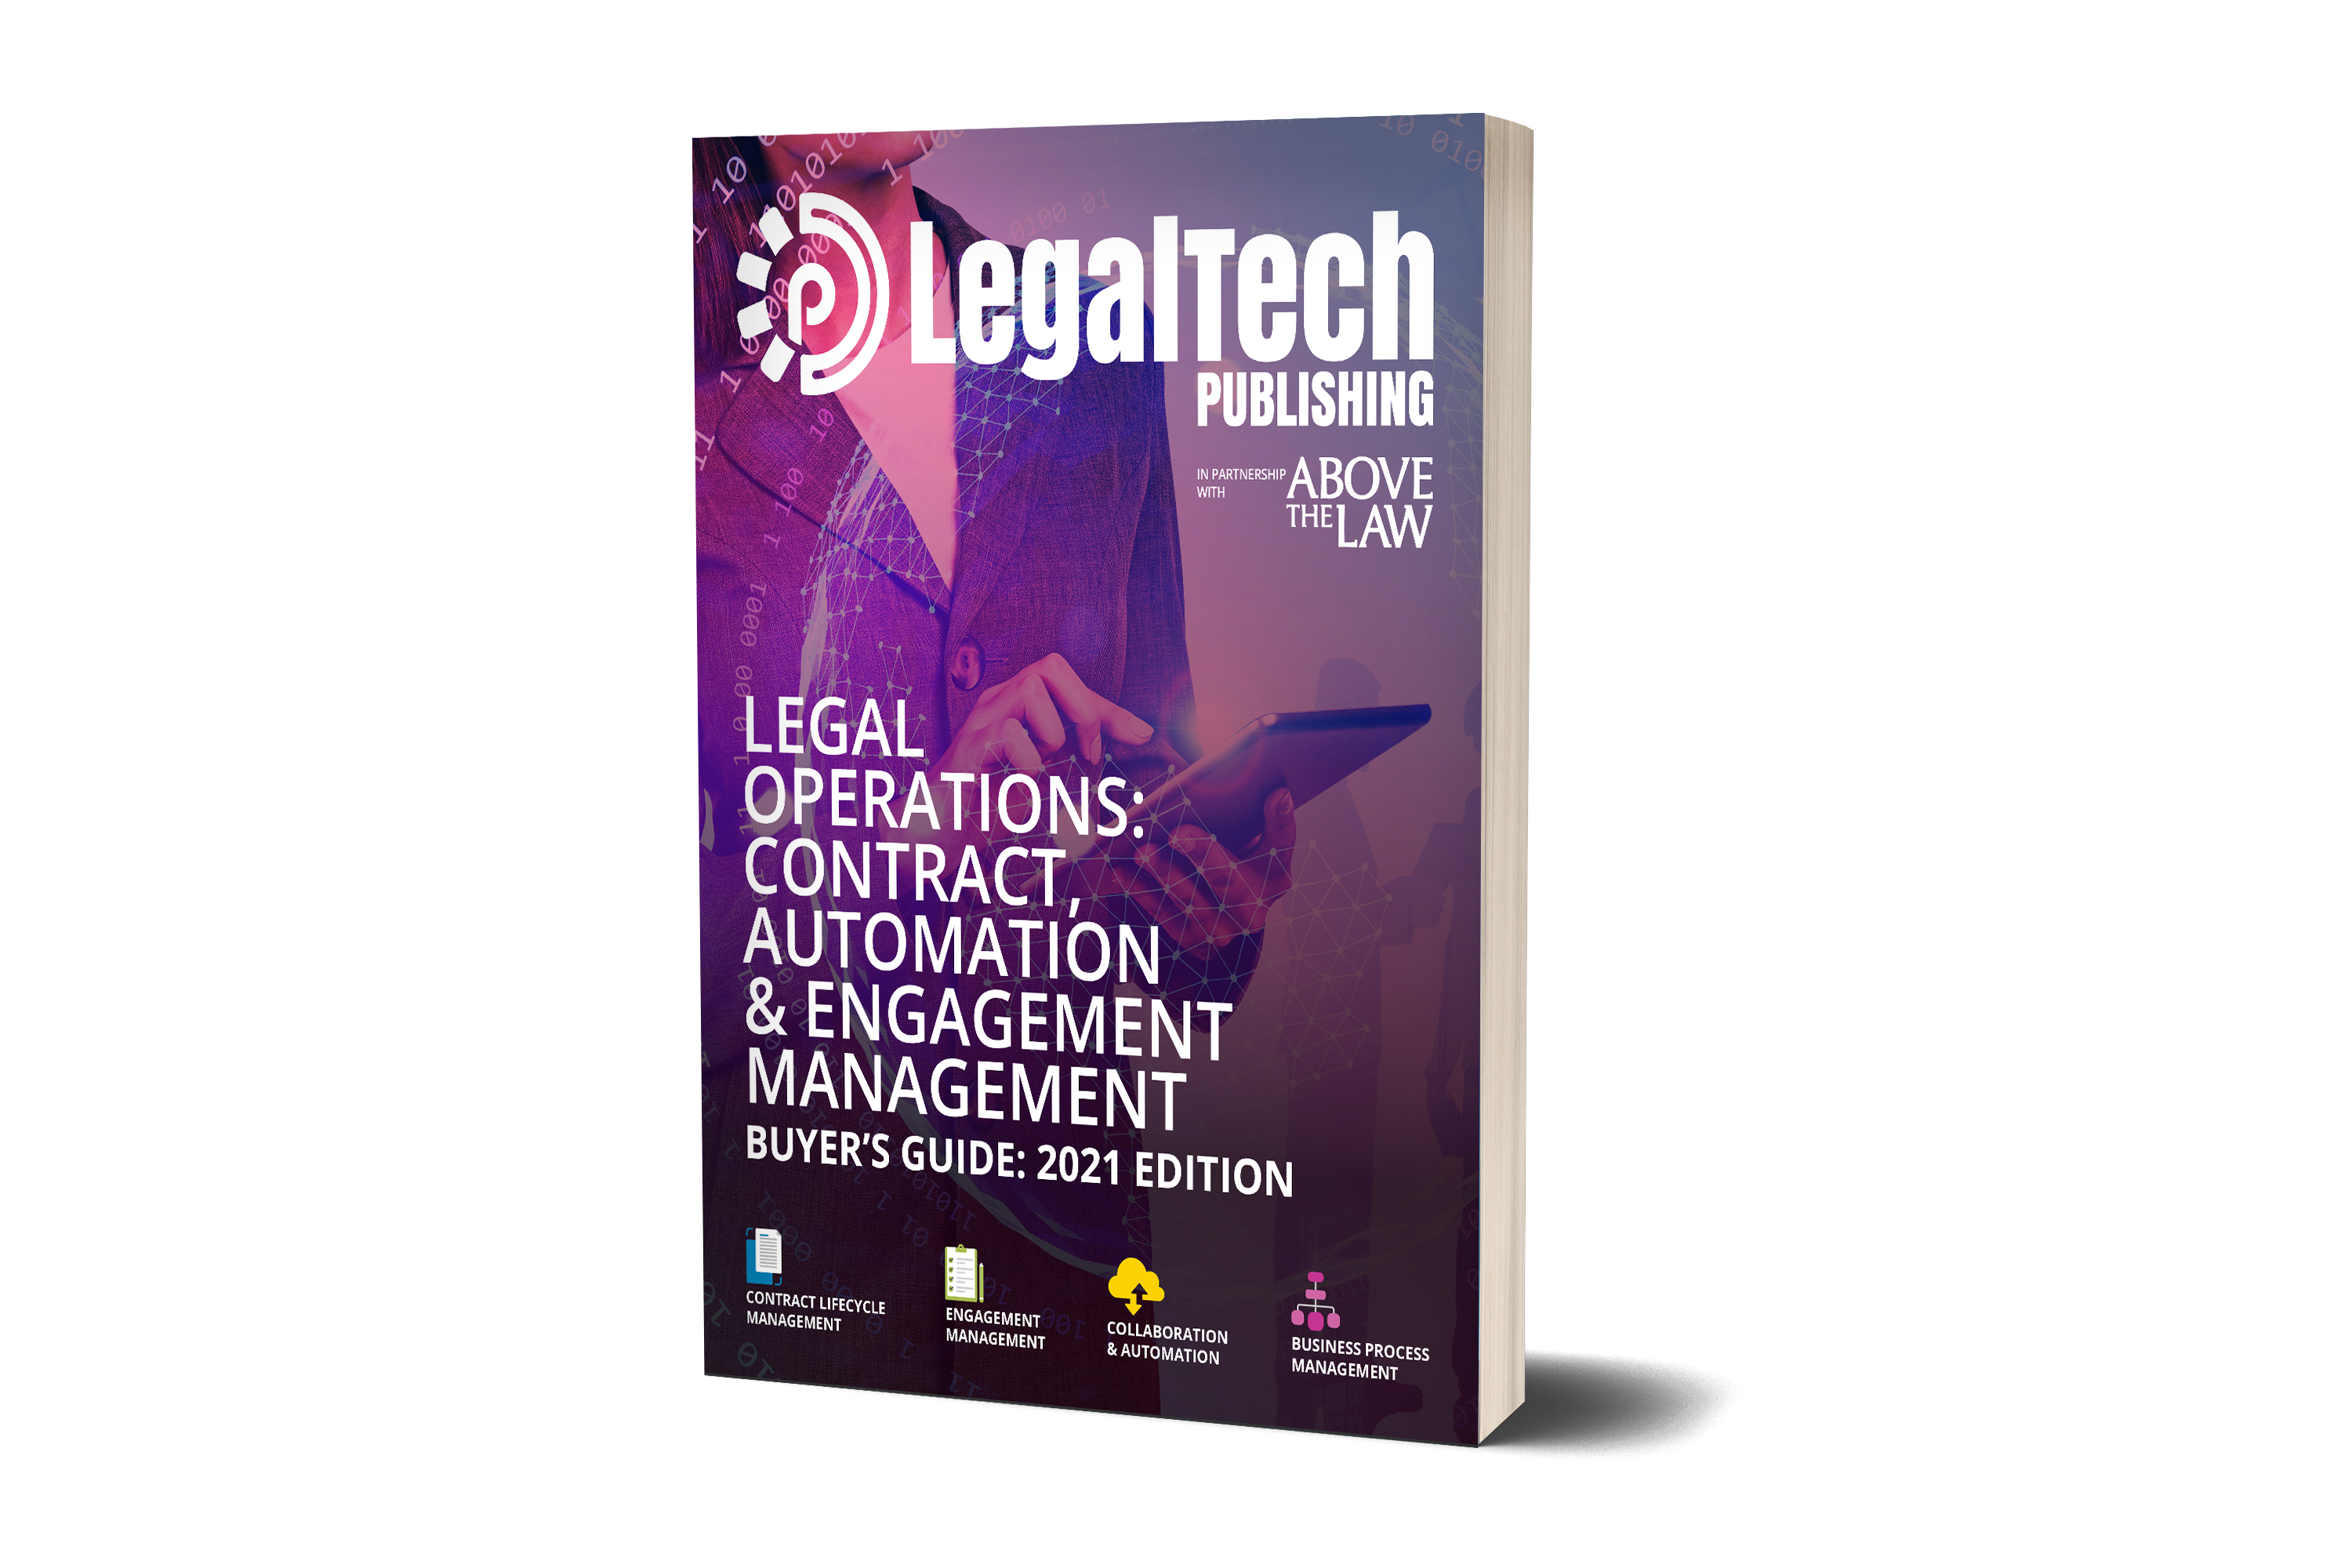 Legal-Ops-Contract-Buyers-Guide-2021-Cover-Standing